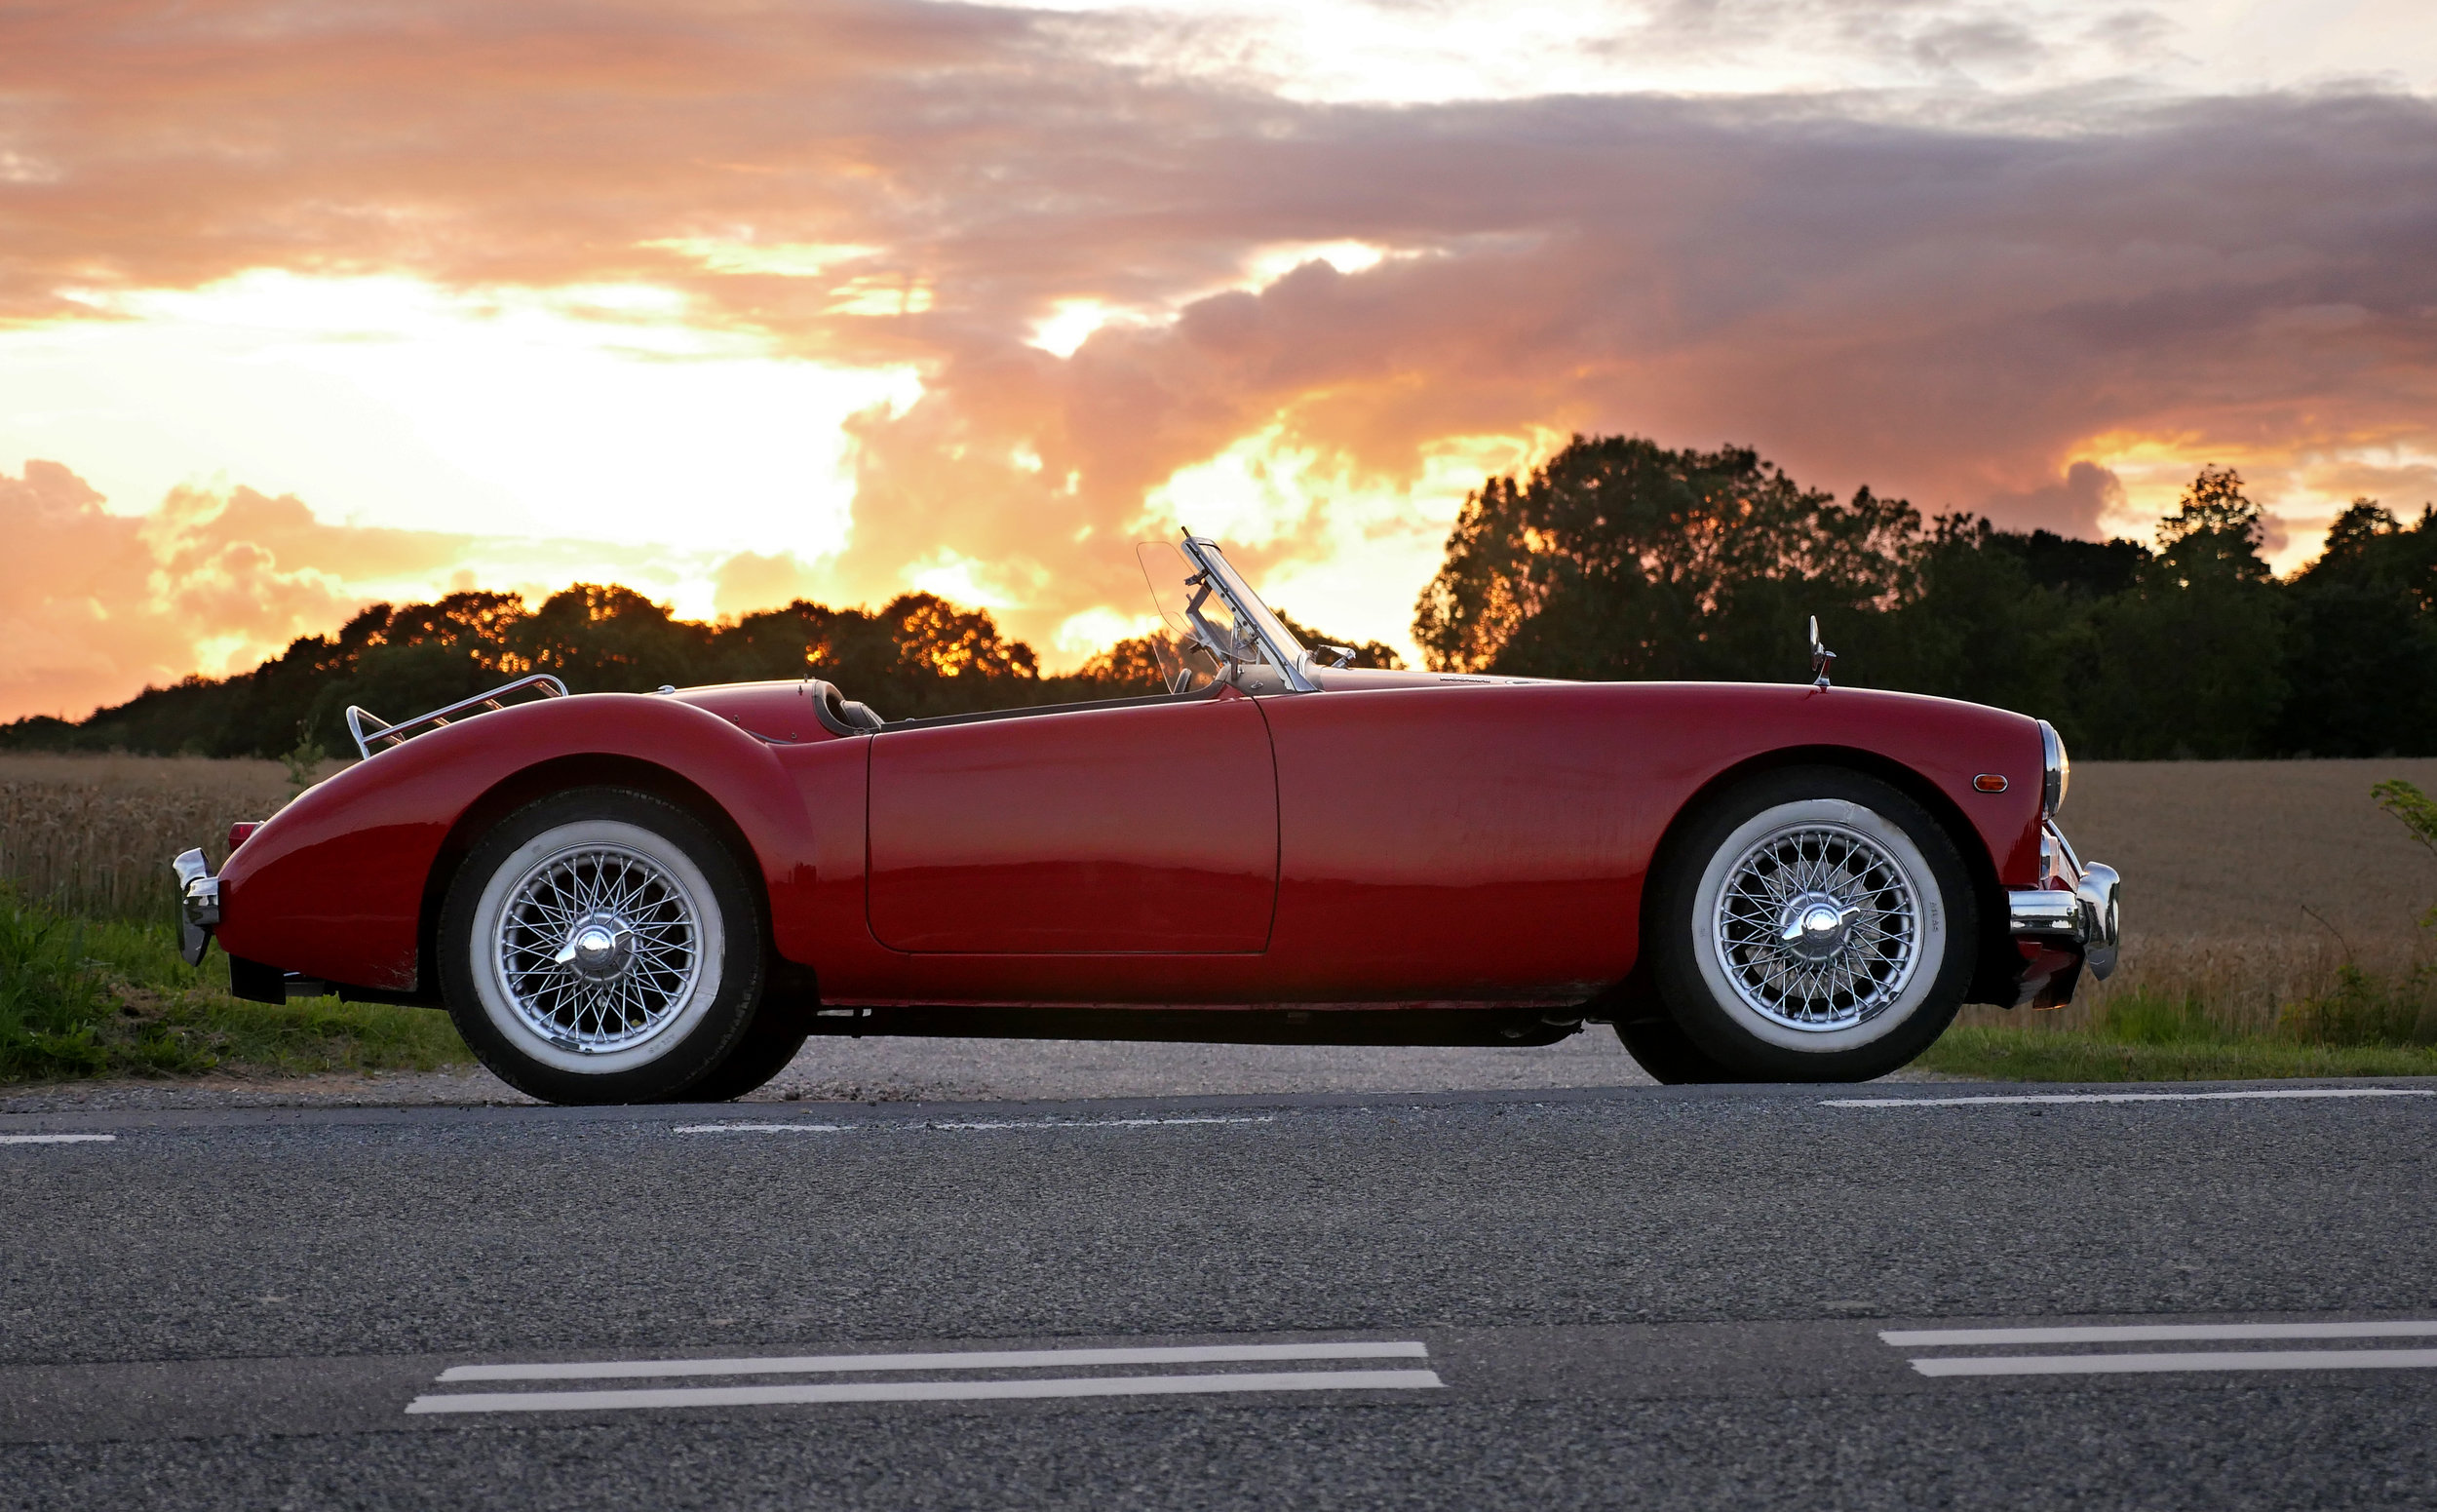 Photograph: Beautiful restored red MGA sports car against a dramatic orange sunset.